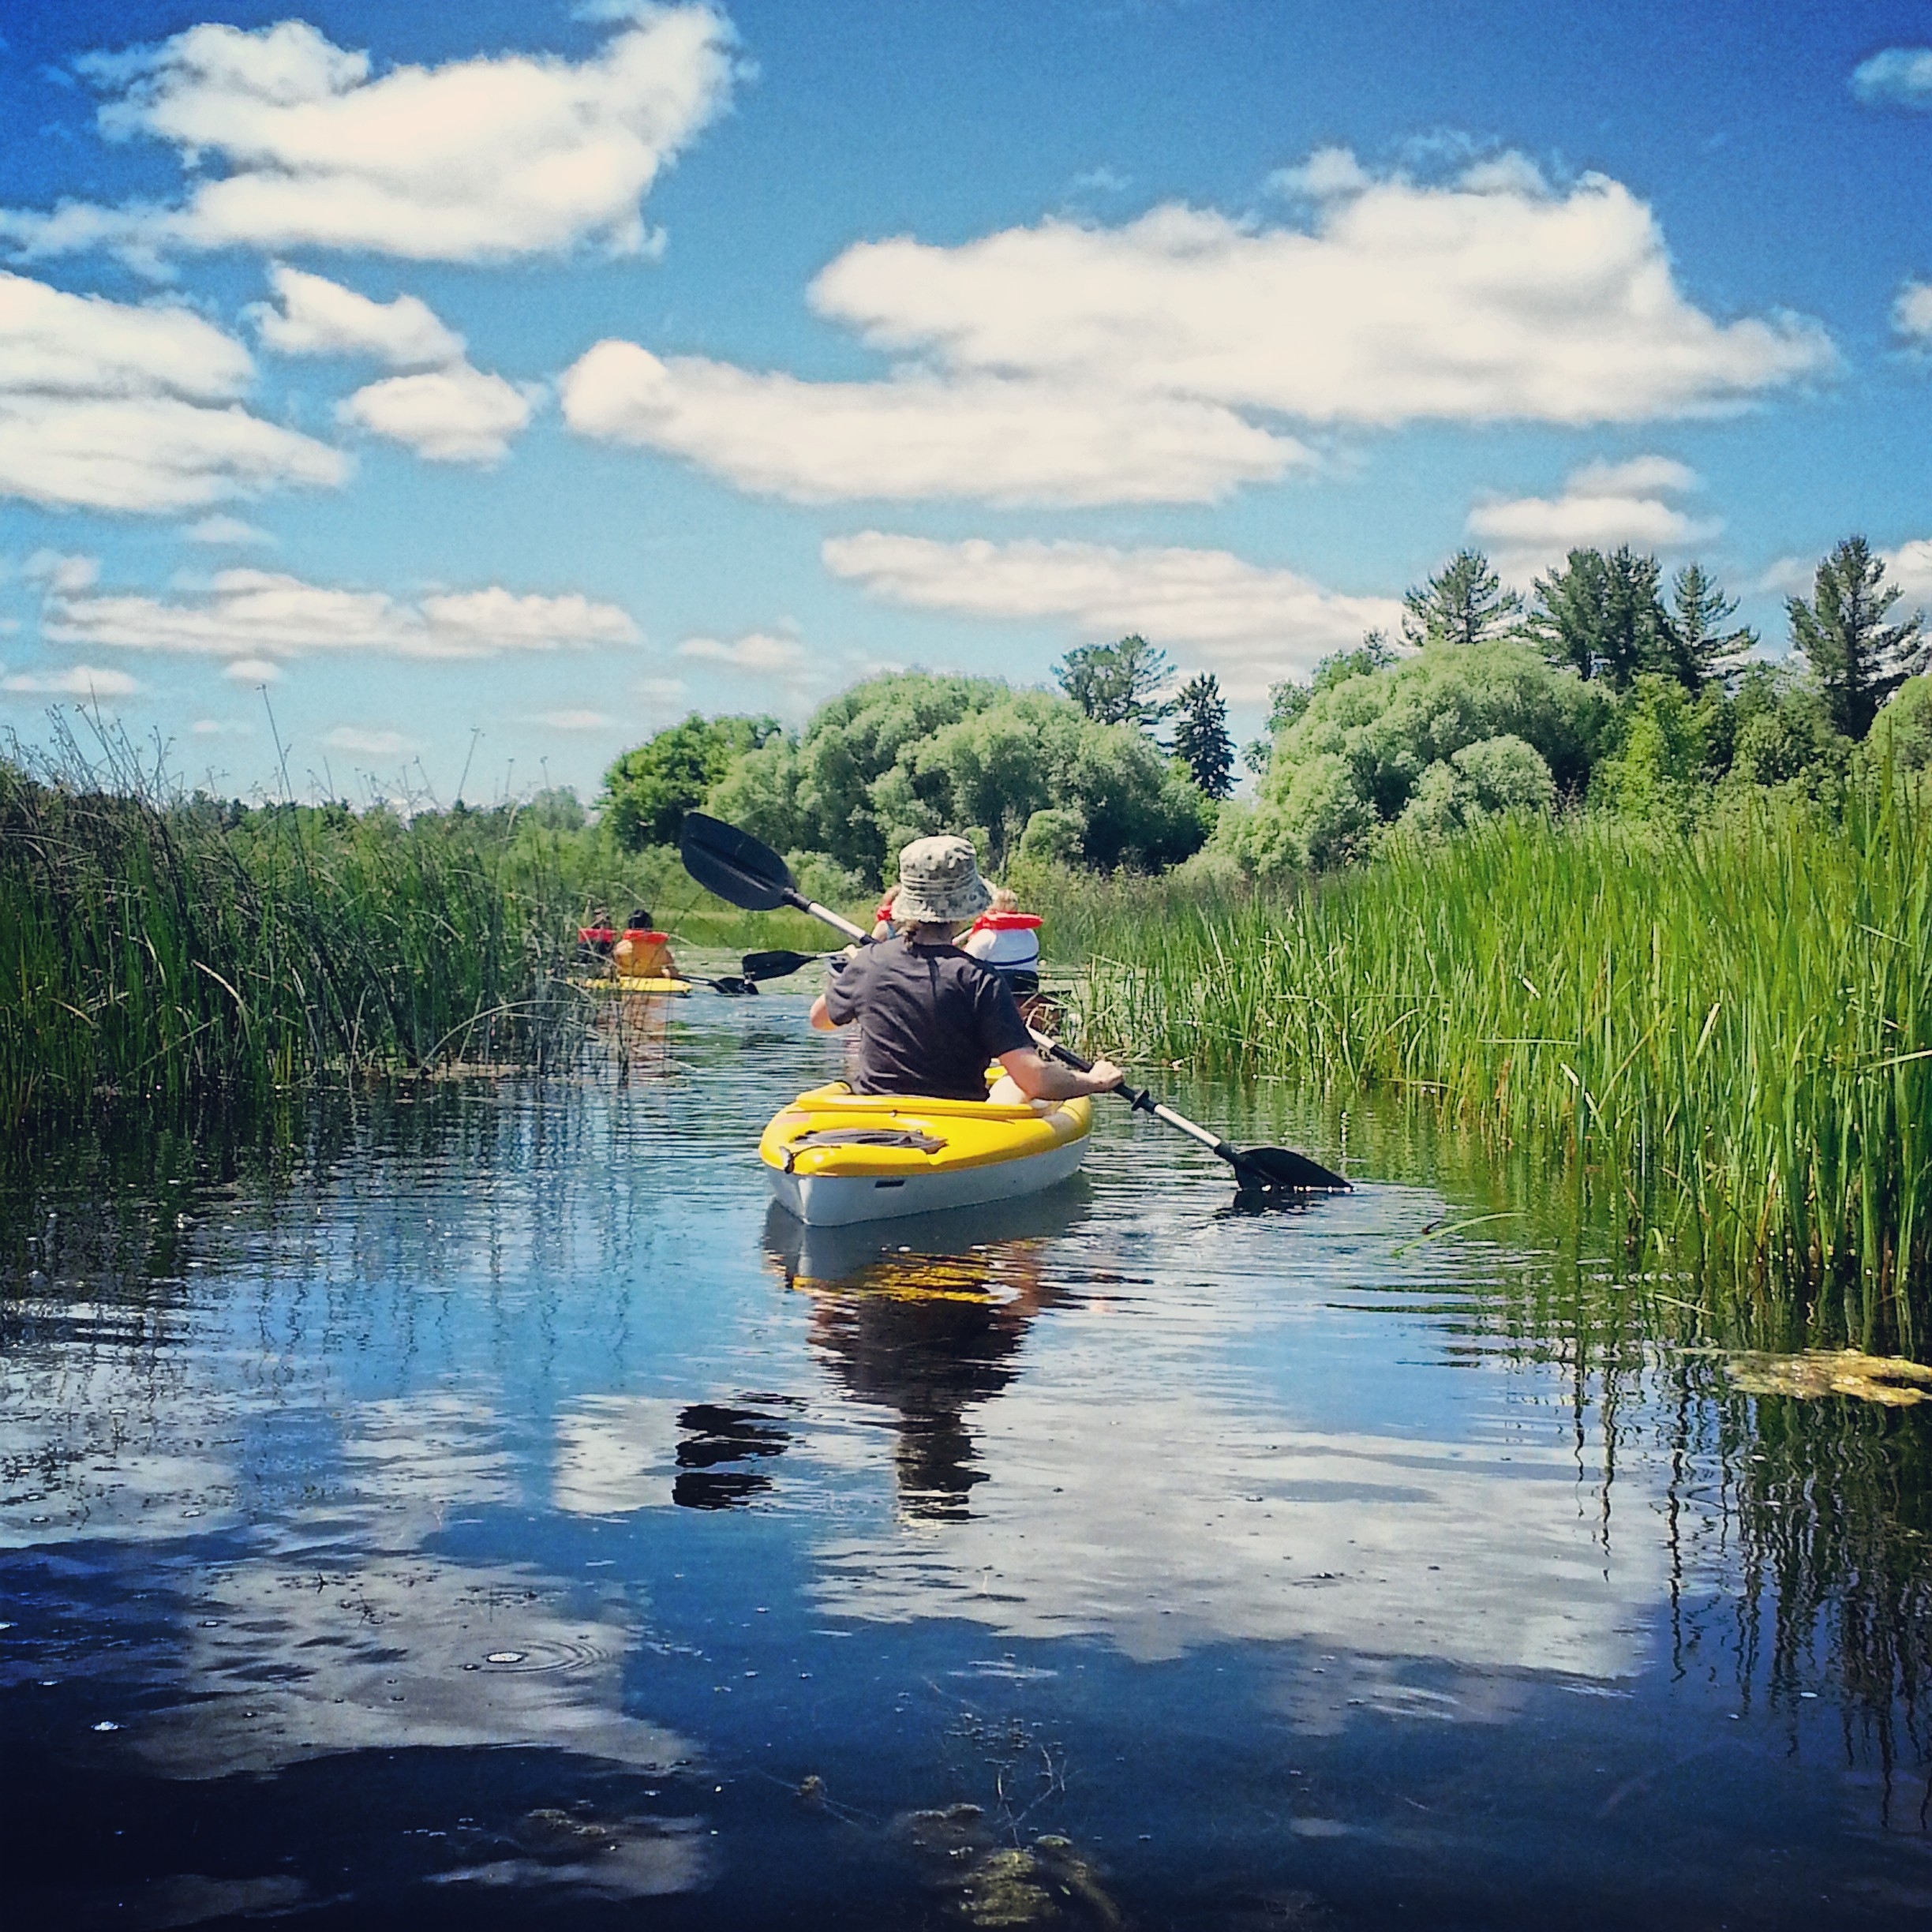 Kayaking through the Wildlife Sanctuary